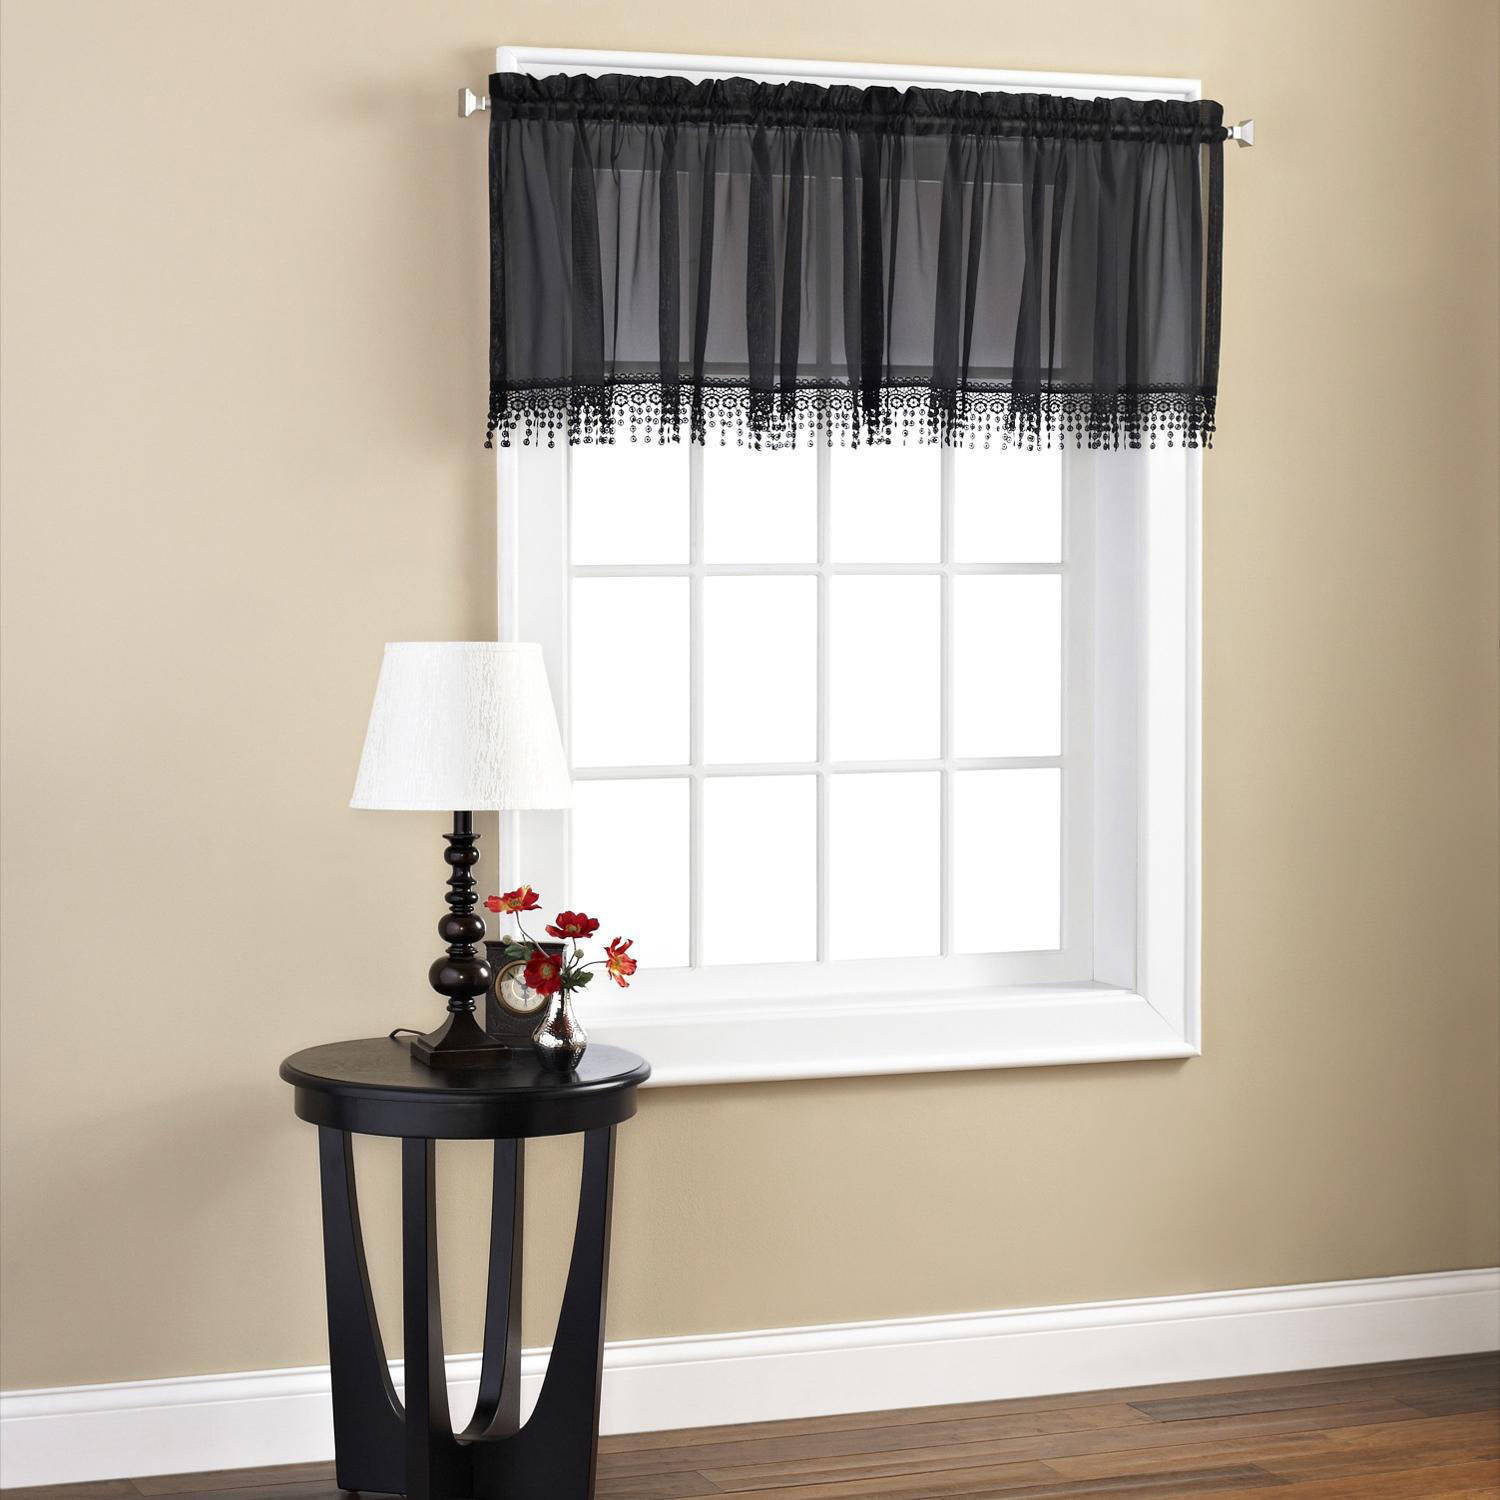 Mainstays Macrame Tailored Valance